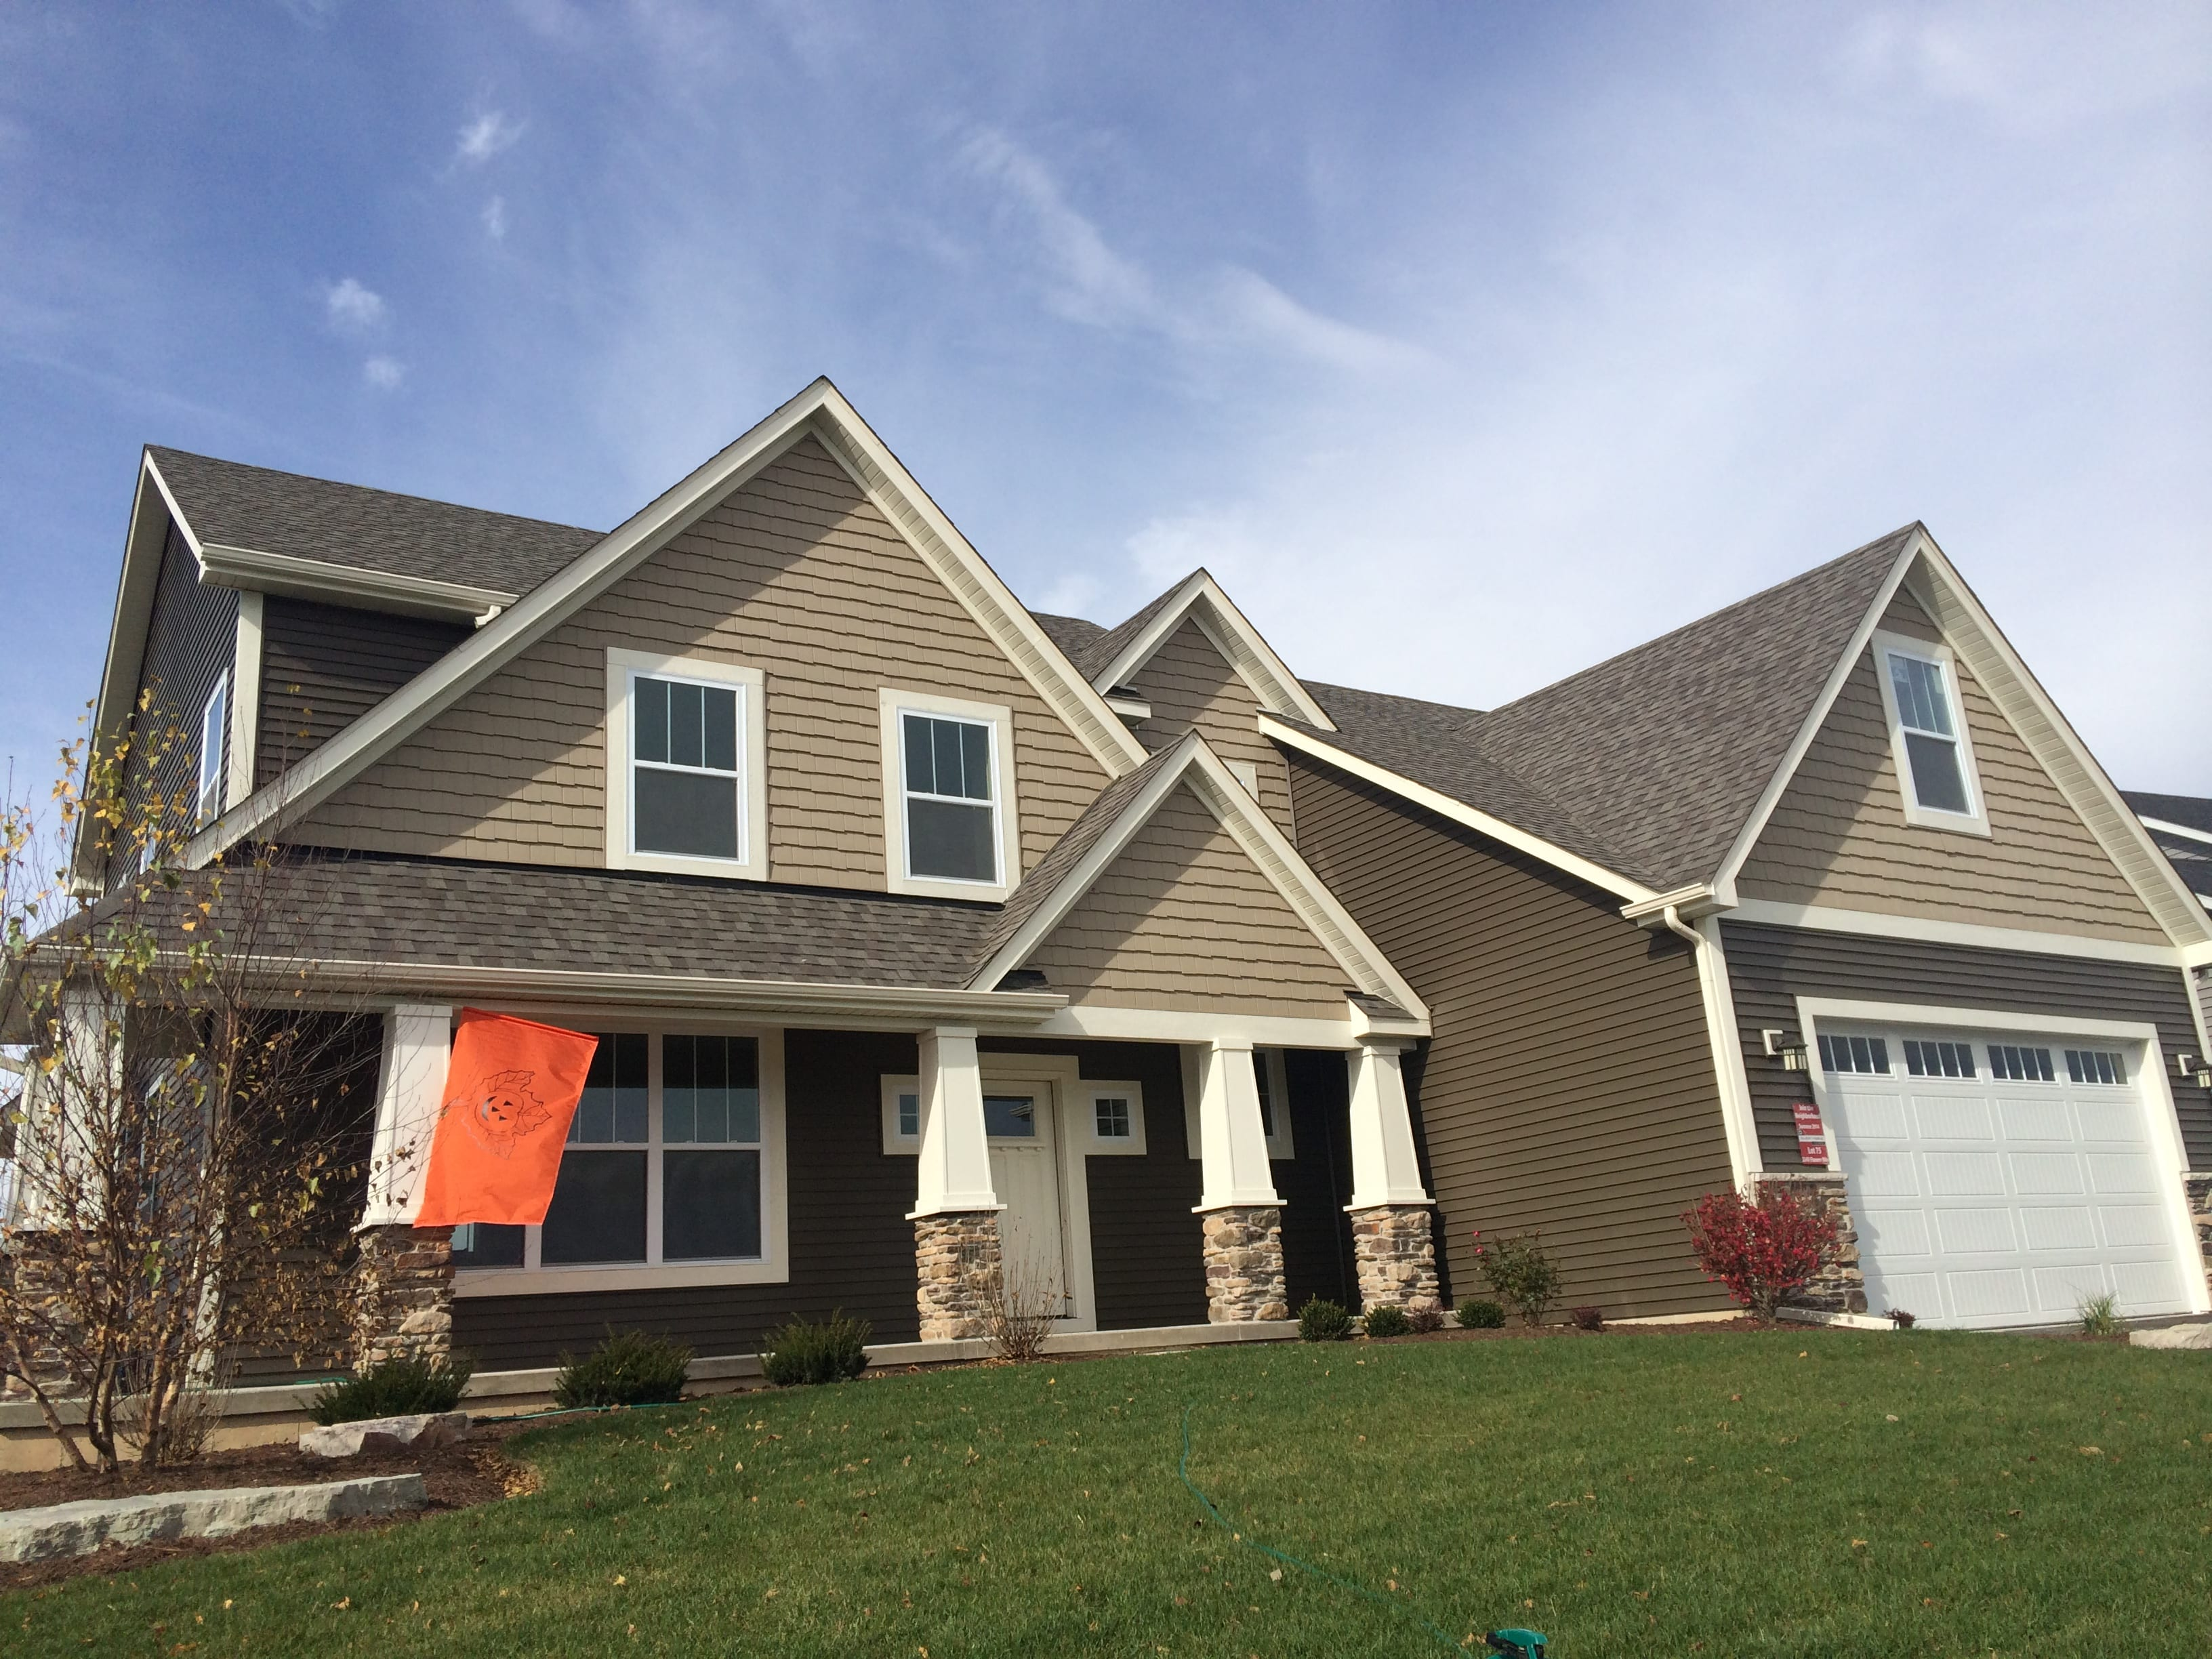 Exterior of a two story home with a pumpkin flag hanging from the front porch